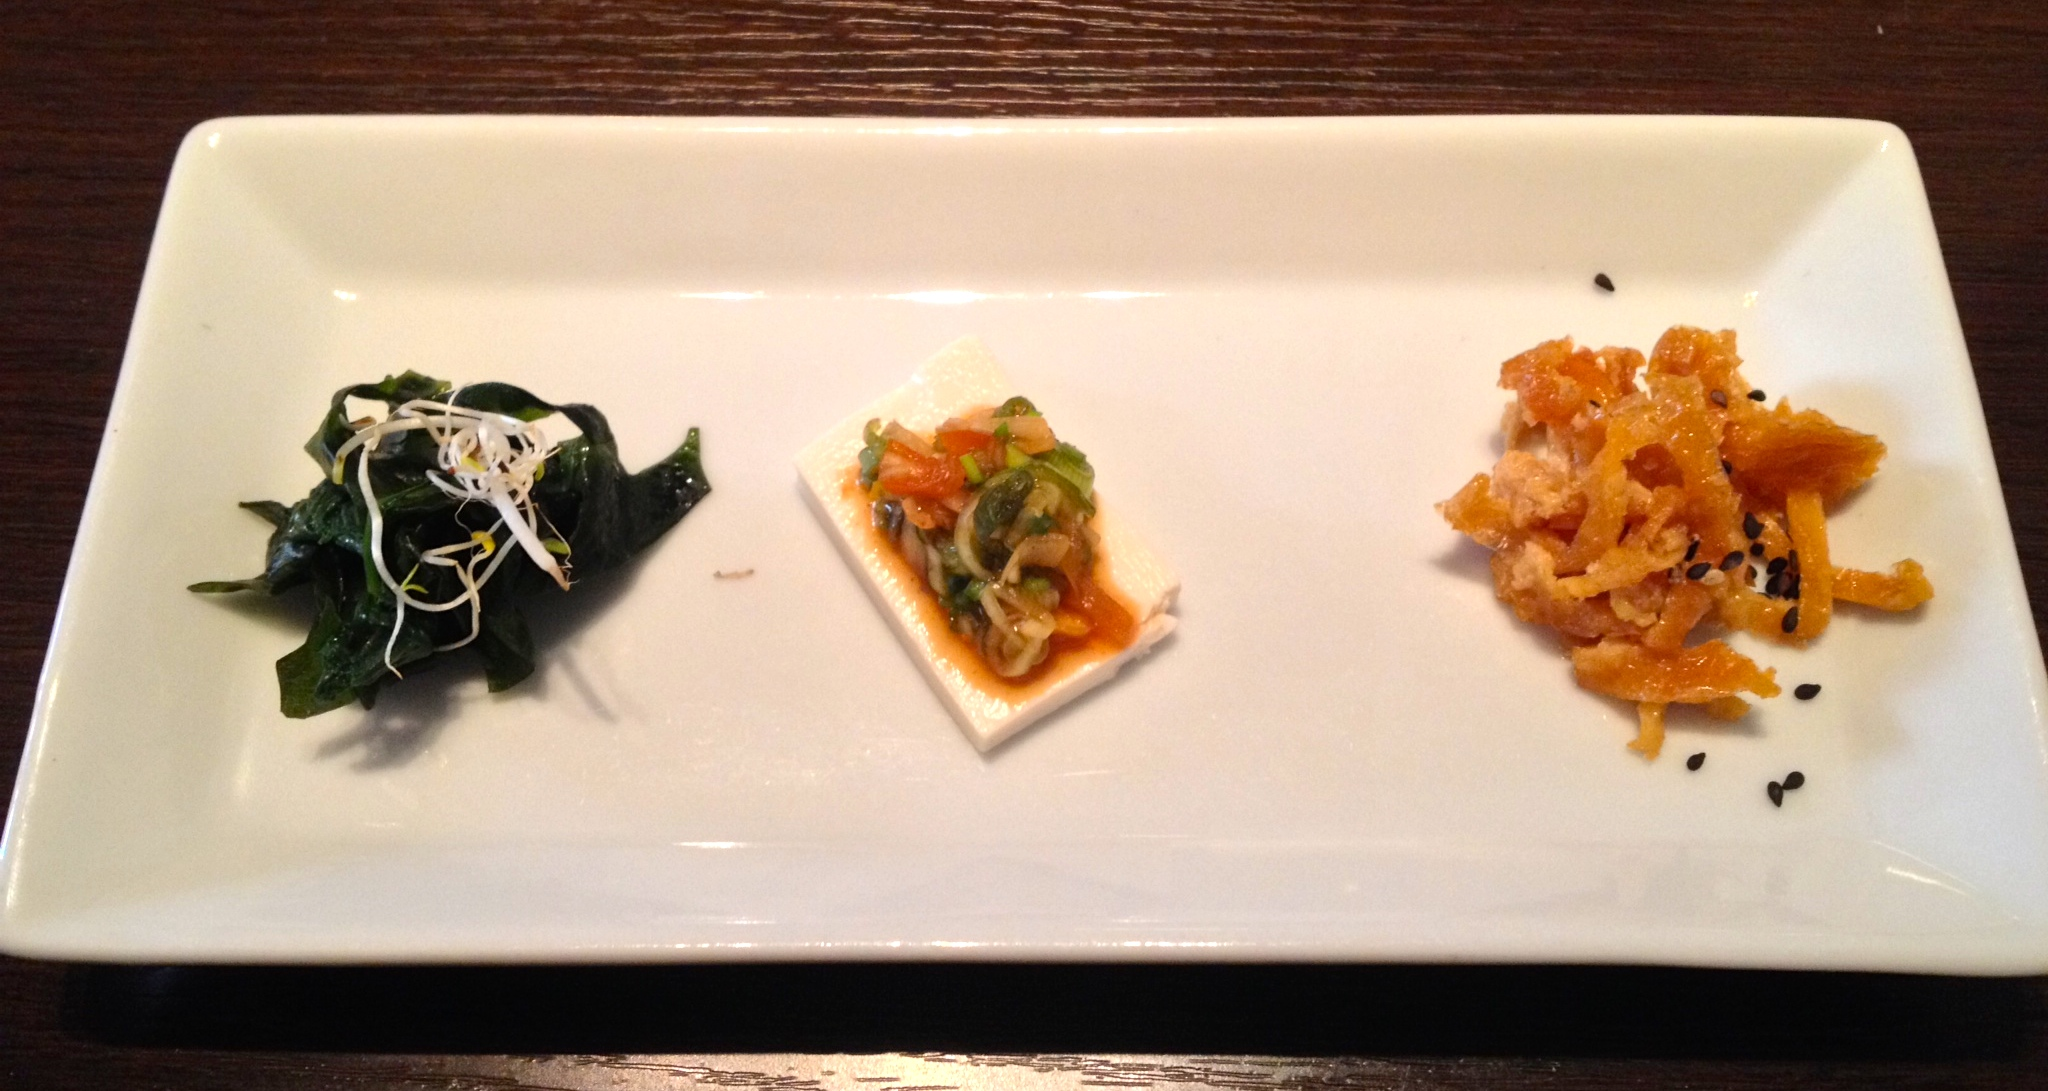 Appetizers from left to right: seaweed salad, soft tofu with a green onion topping, strips of pan-fried sweet tofu